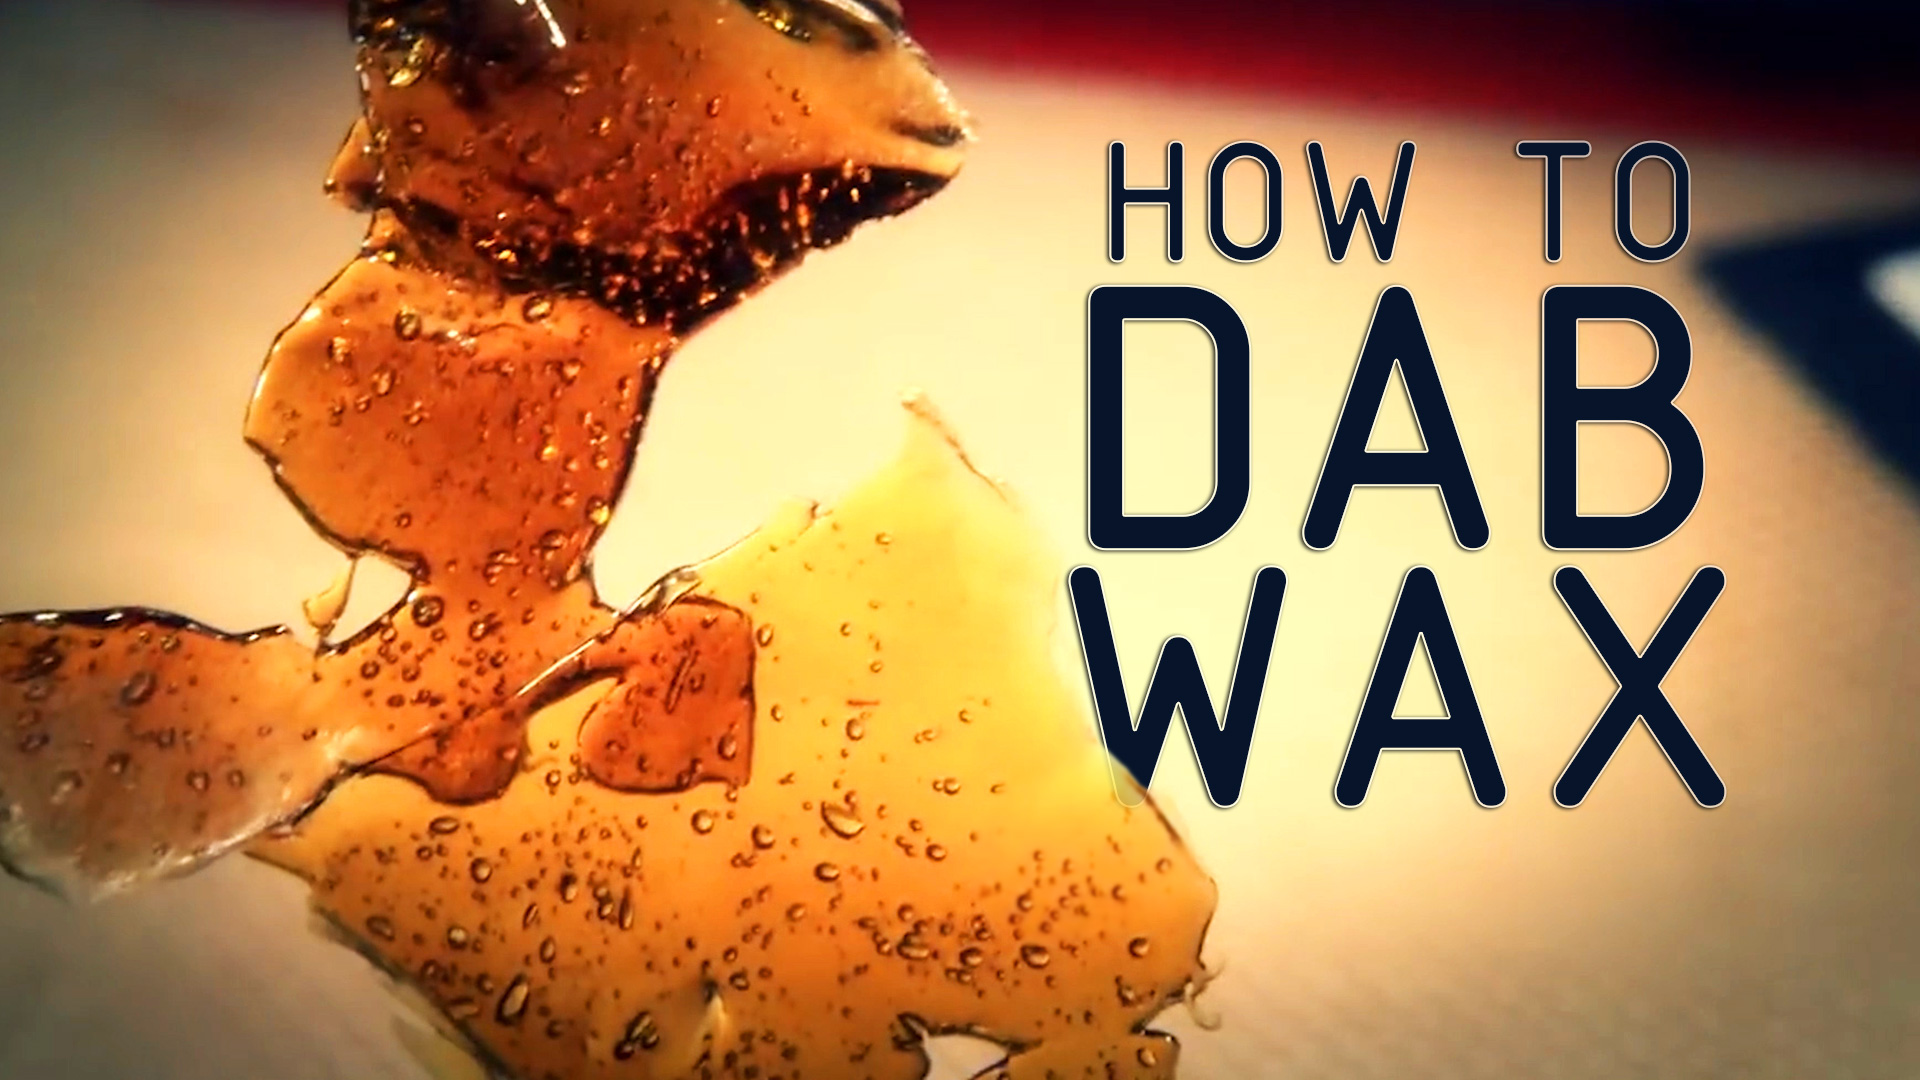 how-to-dab-wax-part-2-cannabasics-107-still-1